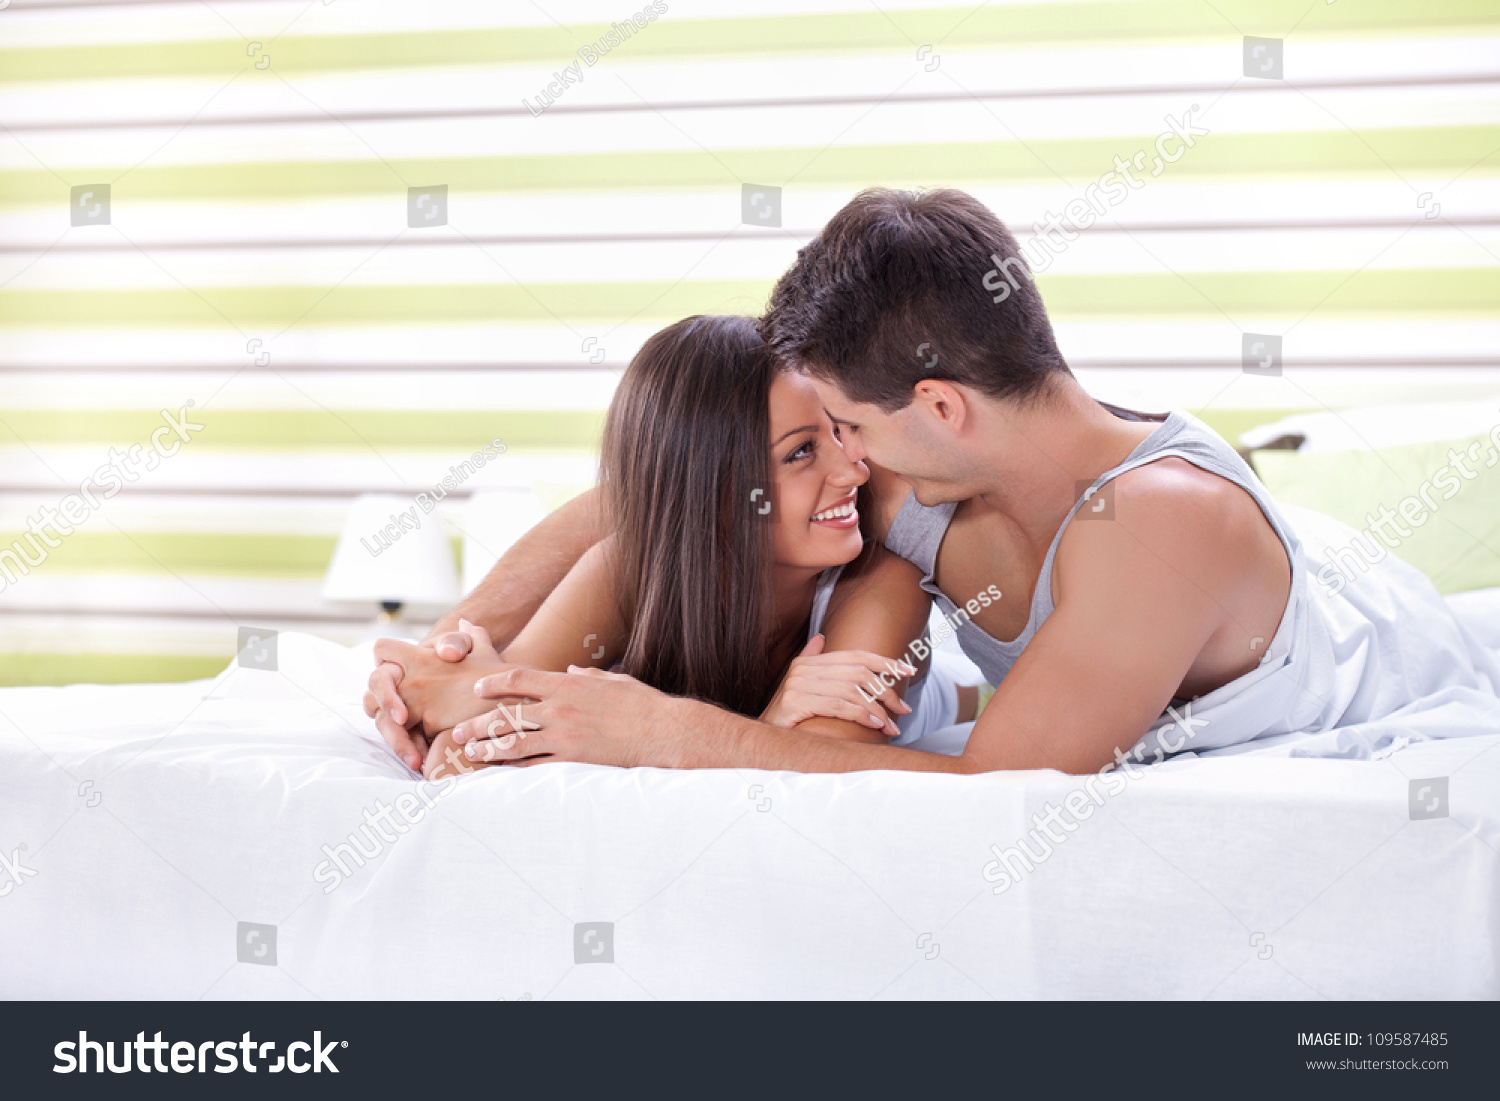 Young love couple in bed  romantic scene in bedroom. Young Love Couple Bed Romantic Scene Stock Photo 109587485